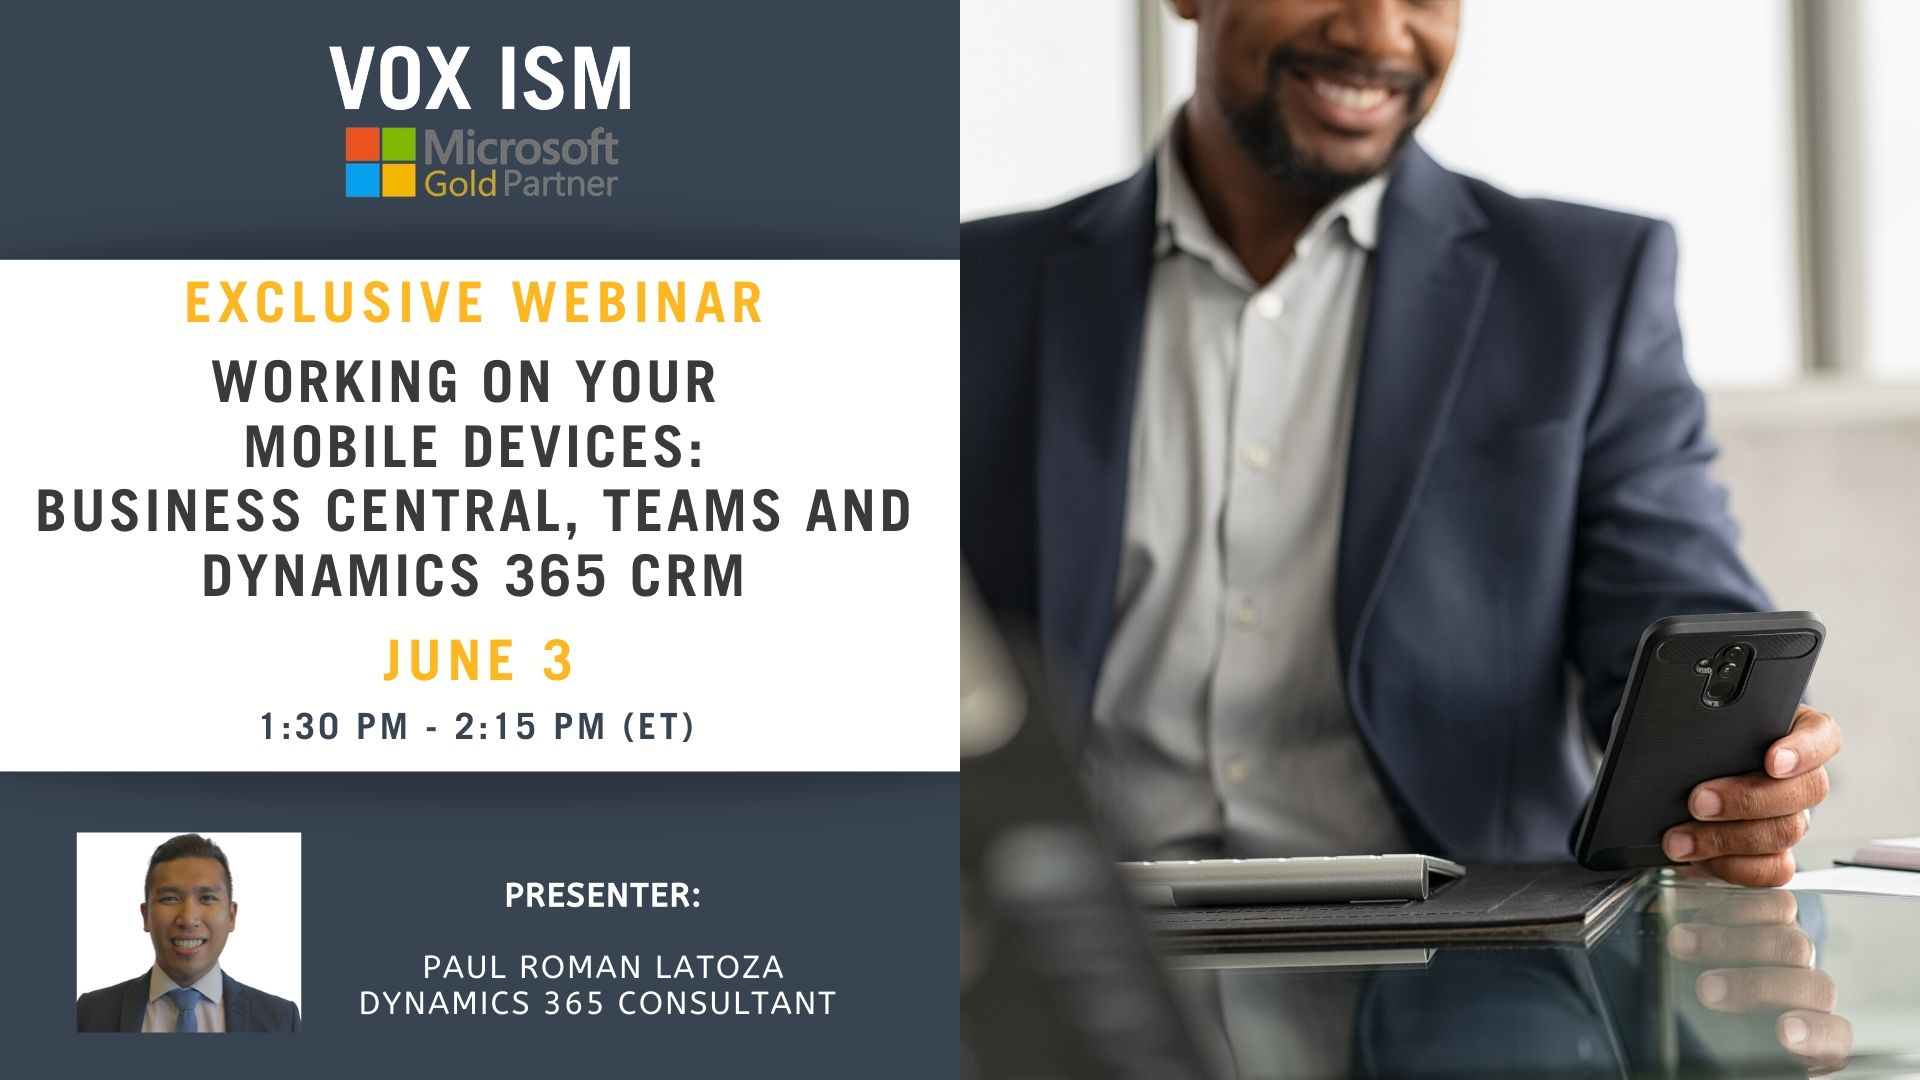 Working on your Mobile devices (Business Central, Teams, CRM) - June 3 - Webinar VOX ISM